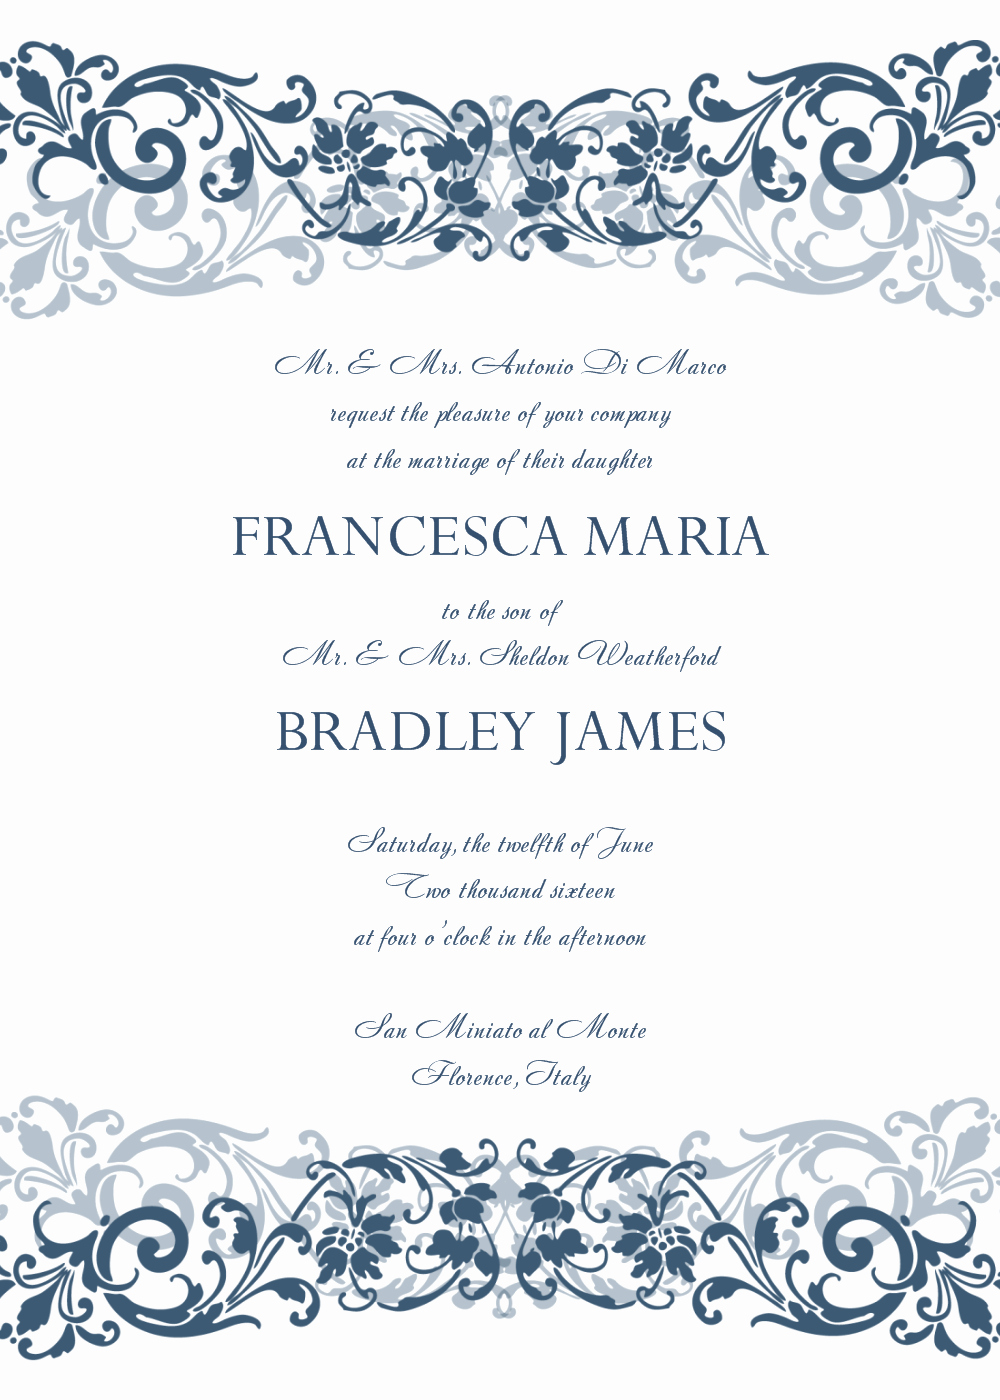 Word Invitation Template Free Elegant 30 Free Wedding Invitations Templates